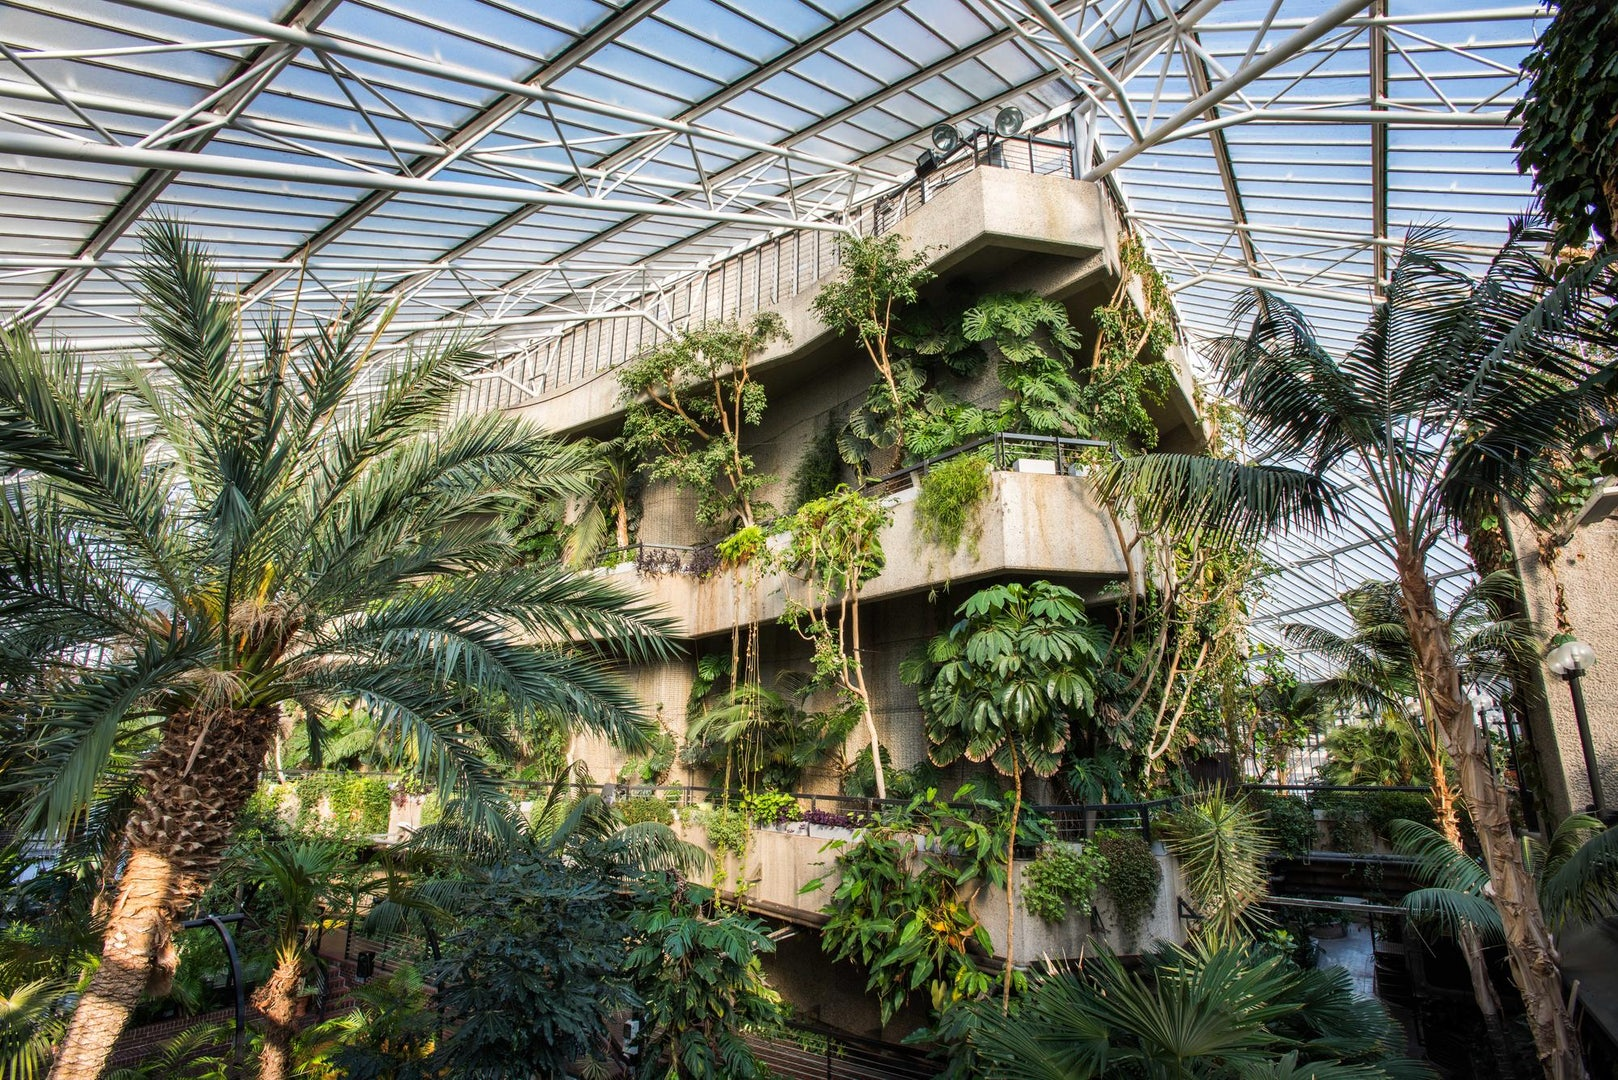 Nostalgic London - Barbican Conservatory